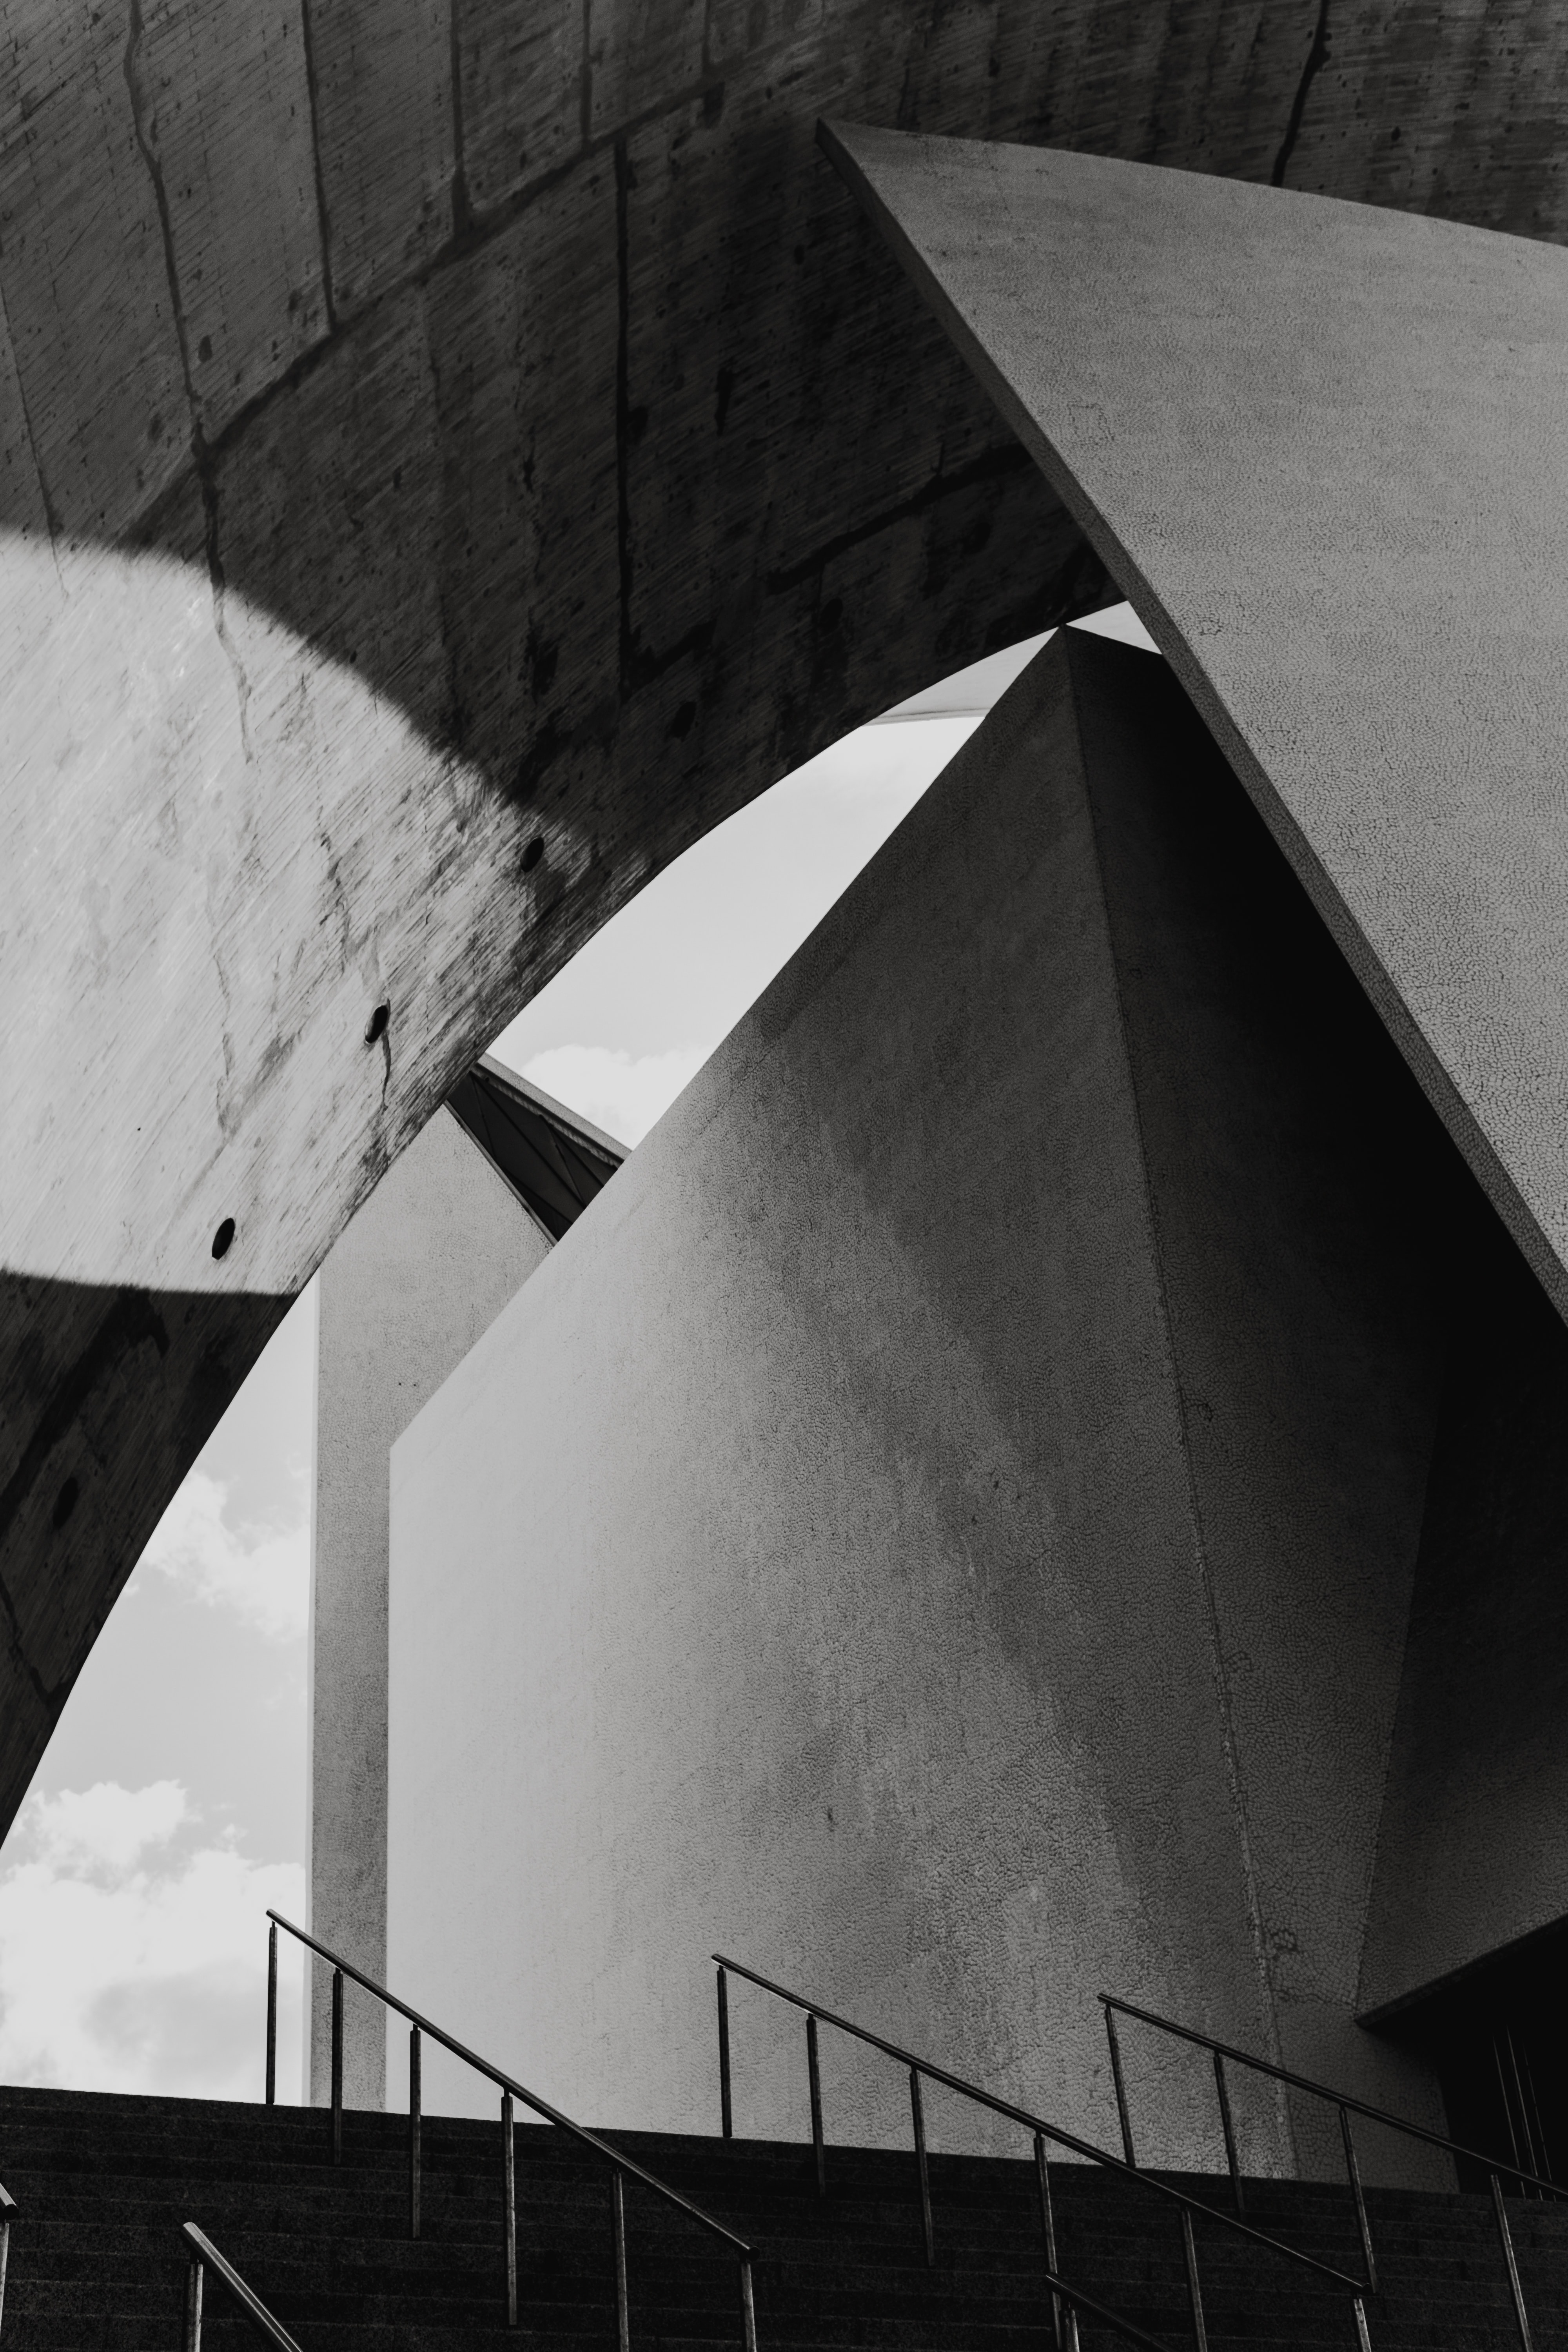 grayscale photography of architectural design